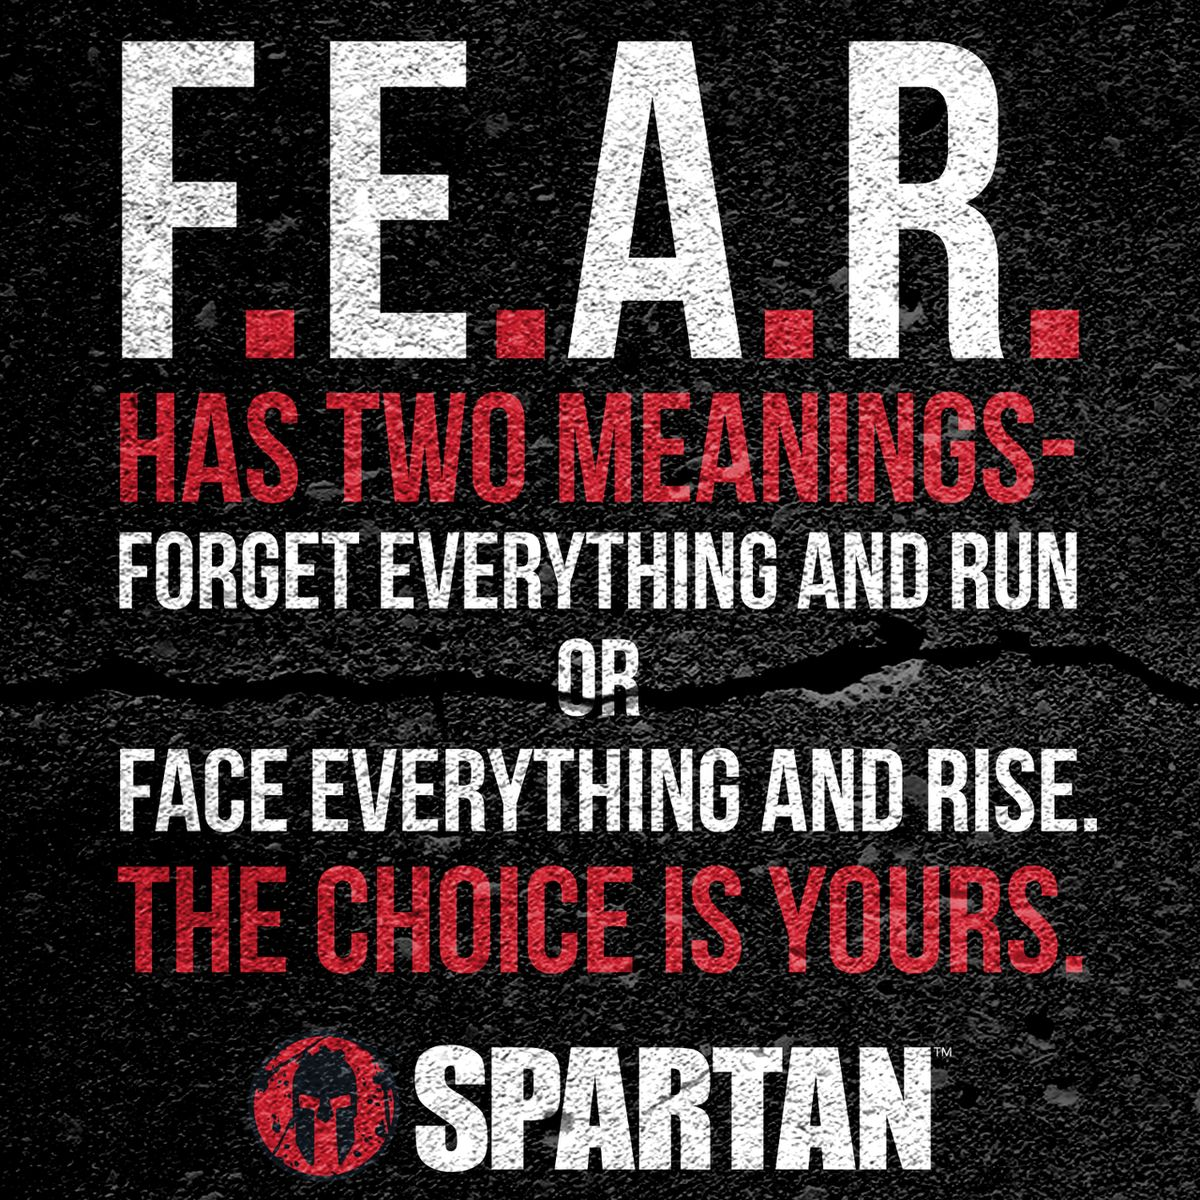 "Make the right choice! <a class=""pintag"" href=""/explore/ChallengeAccepted/"" title=""#ChallengeAccepted explore Pinterest"">#ChallengeAccepted</a> <a class=""pintag"" href=""/explore/SpartanRace/"" title=""#SpartanRace explore Pinterest"">#SpartanRace</a> For more motivation tune in: <a href=""http://sprtn.im/SpartanUP-Podcast"" rel=""nofollow"" target=""_blank"">sprtn.im/…</a>!<p><a href=""http://www.homeinteriordesign.org/2018/02/short-guide-to-interior-decoration.html"">Short guide to interior decoration</a></p>"